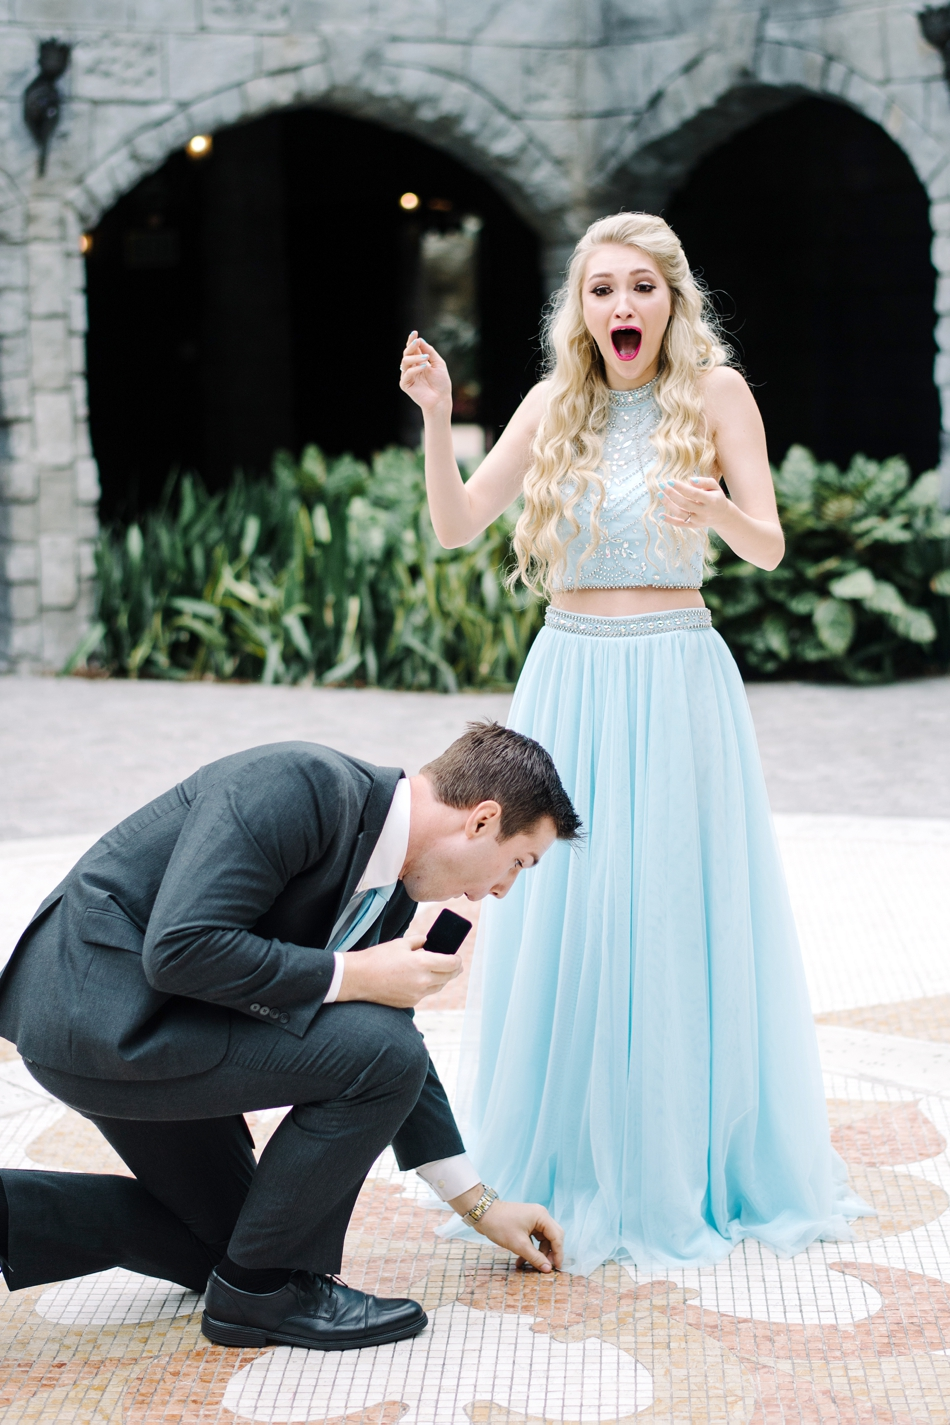 guy drops ring during proposal